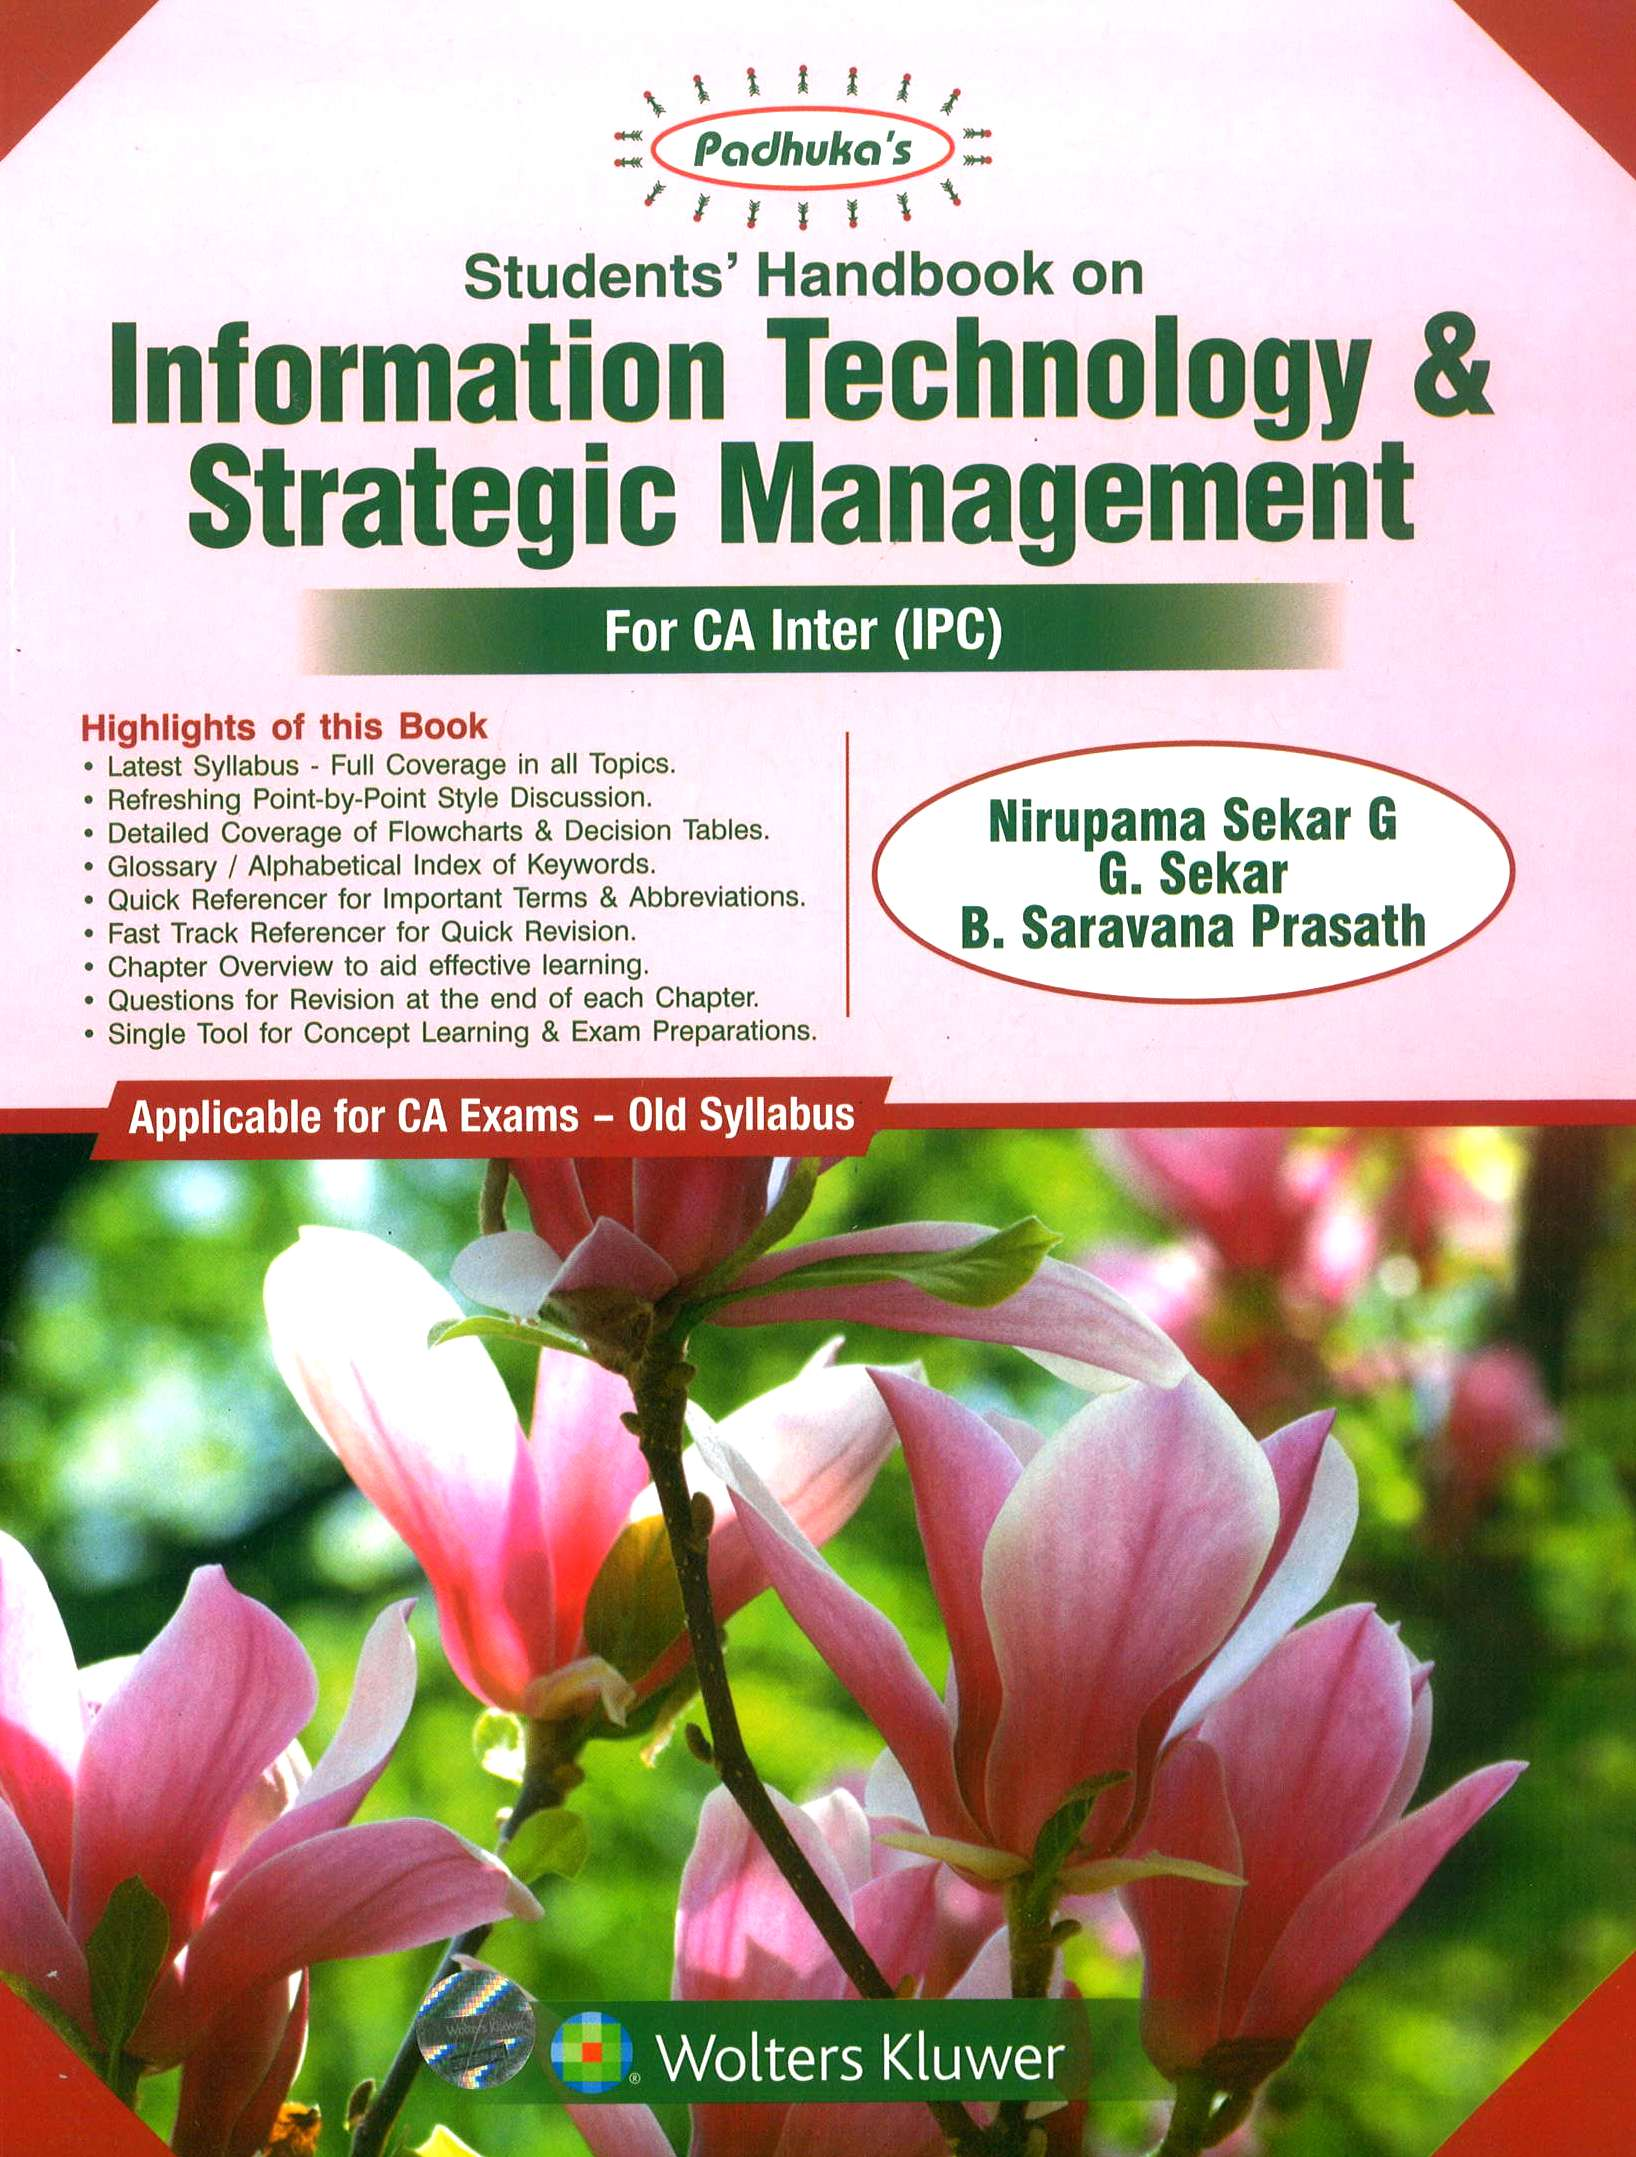 Padhuka  Information Technology and Strategic Management for CA-Intermediate (IPC ) by Nirupama Sekar G, G. Sekar and CA B. Saravana Prasath for Nov 2018 Exam (Wolters Kluwer Publishing) 2018